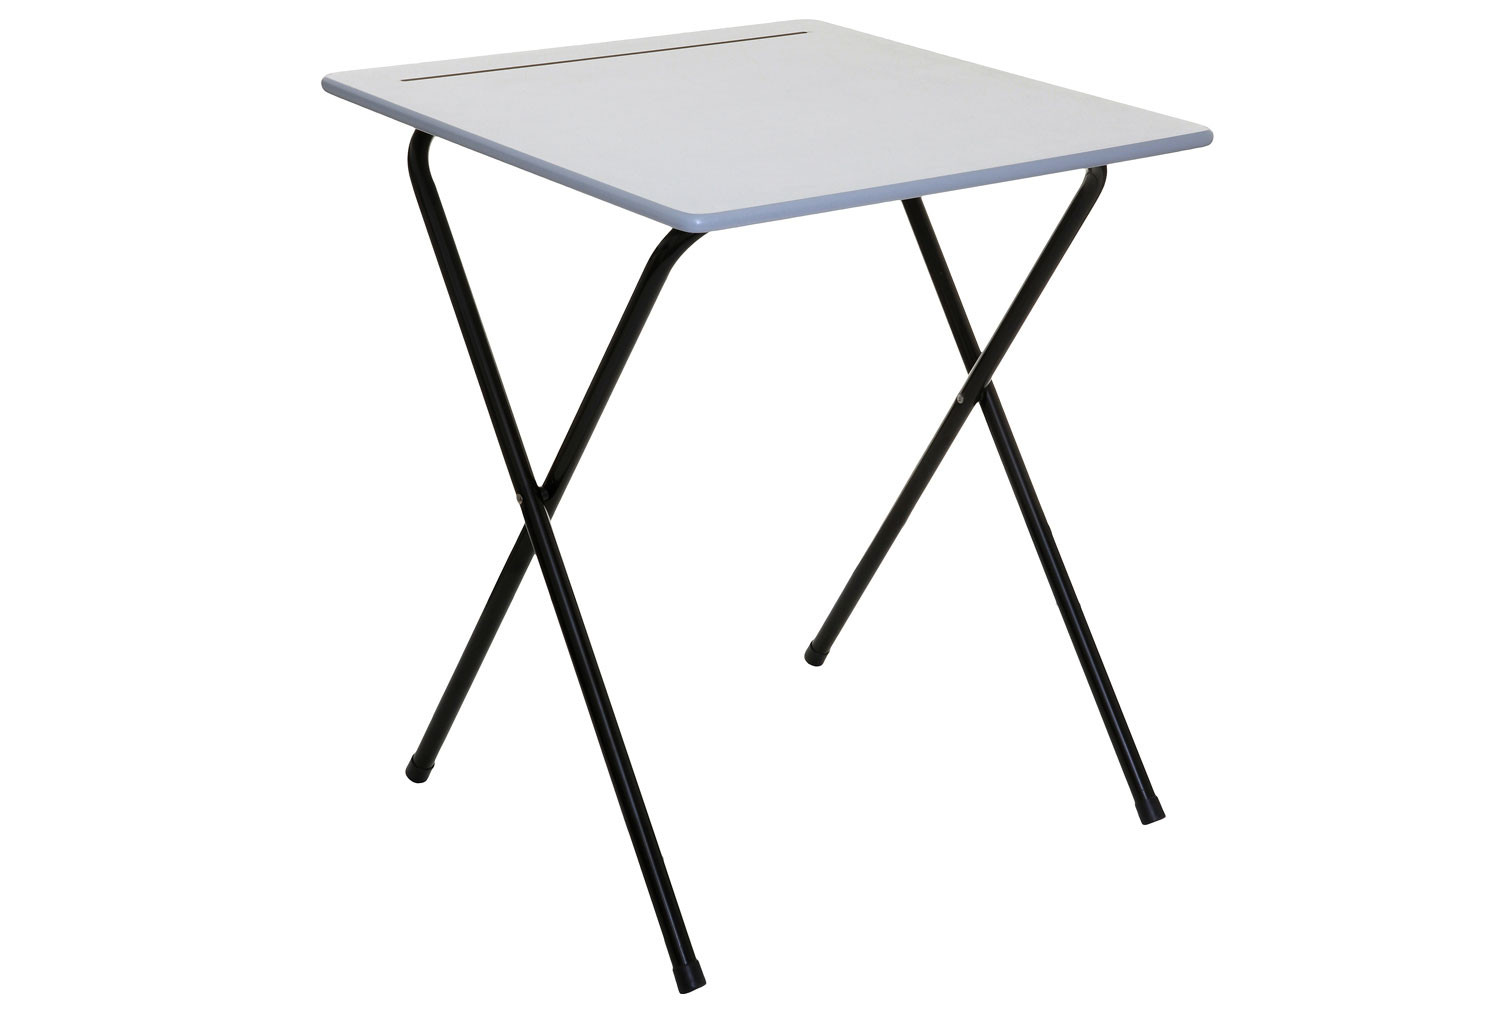 Pack of 2 Folding Exam Desks With Pencil Groove